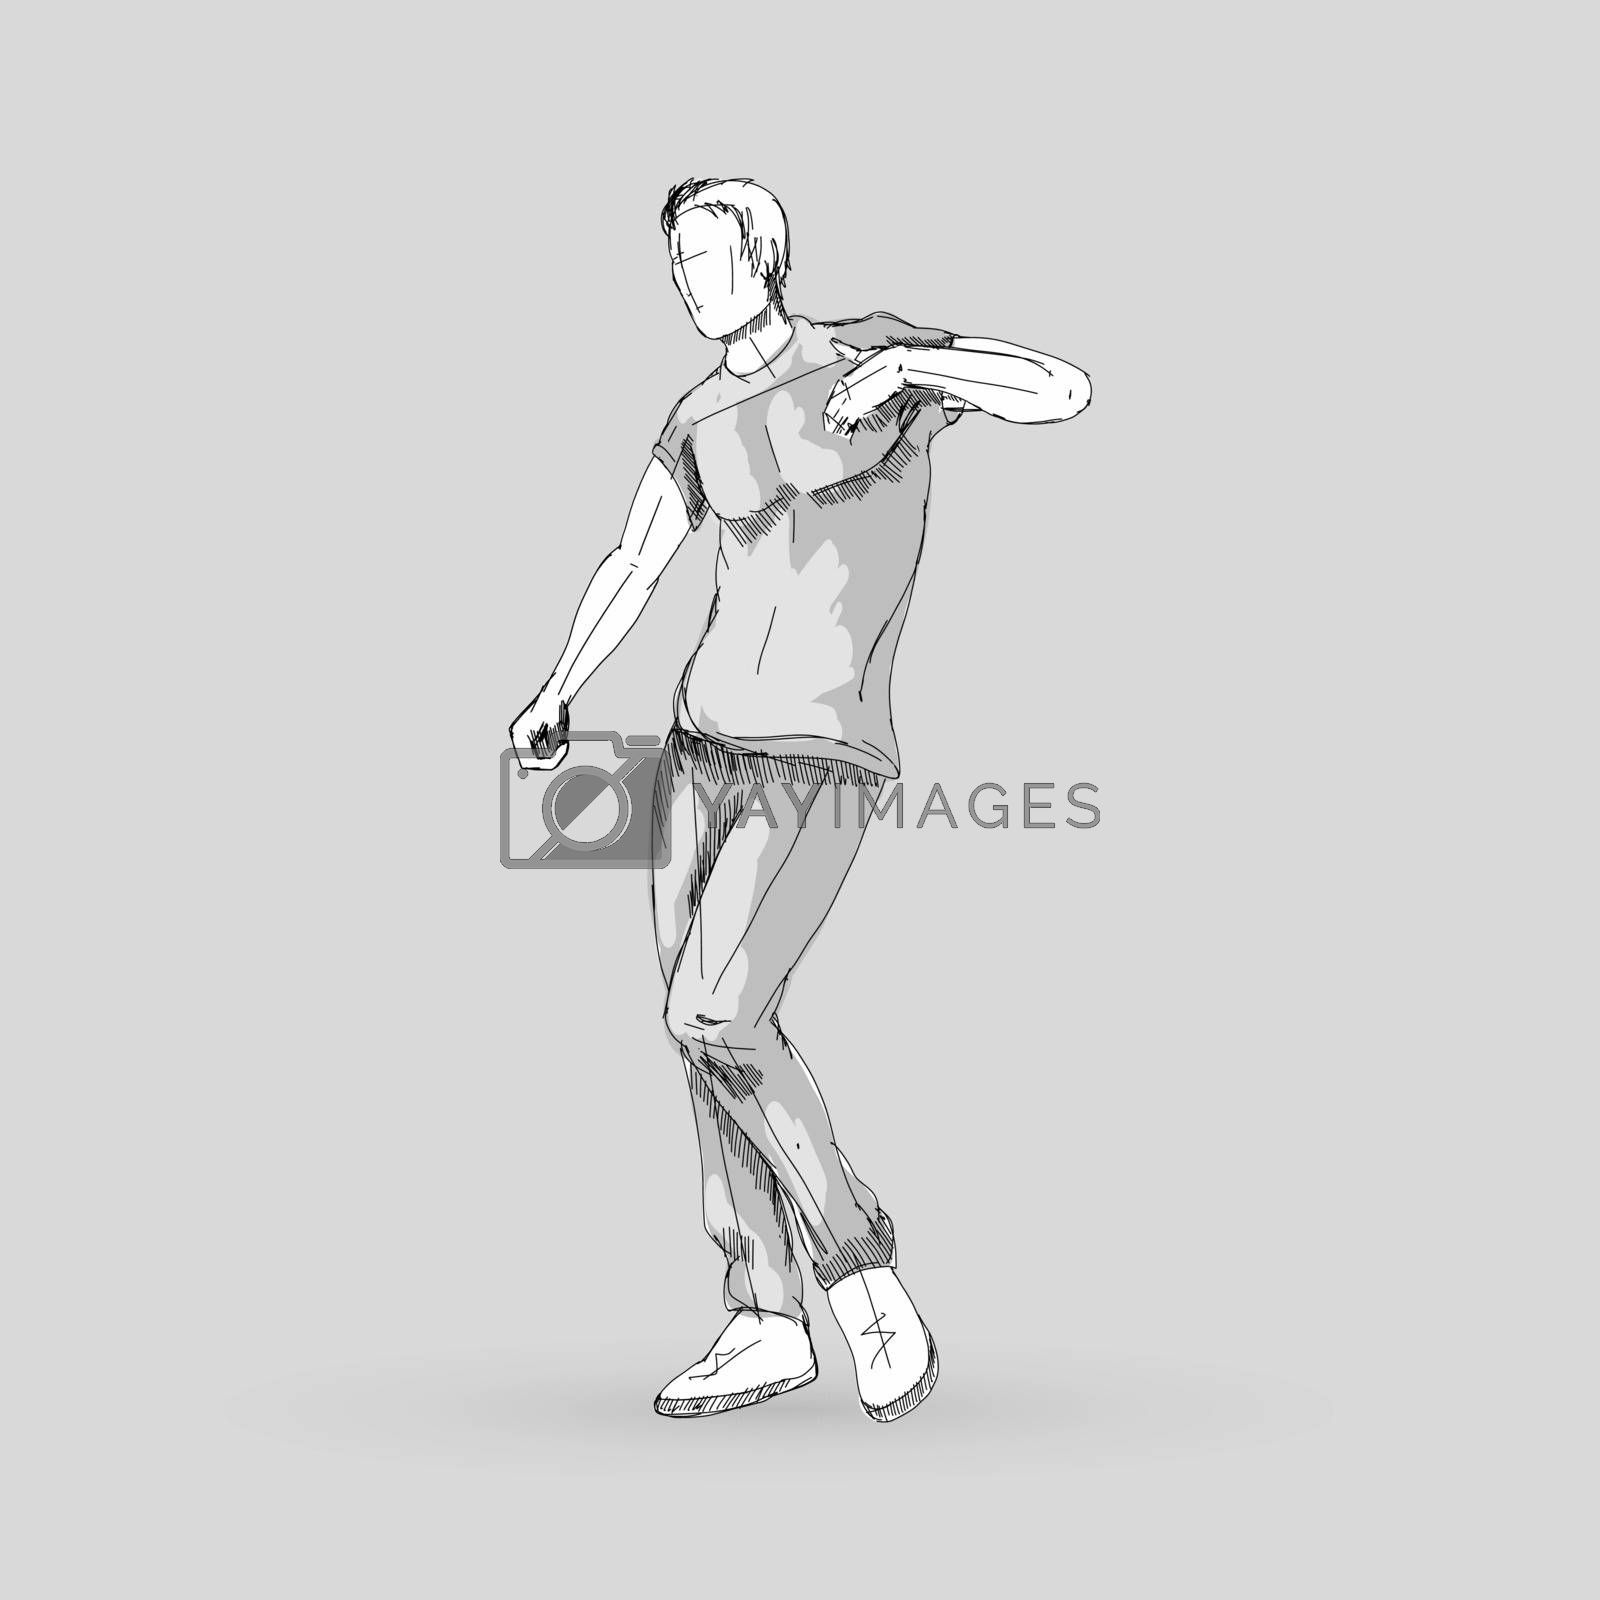 Modern Style Dancer Posing Sketch of a Man Dancer Hip Hop Choreography on a Gray